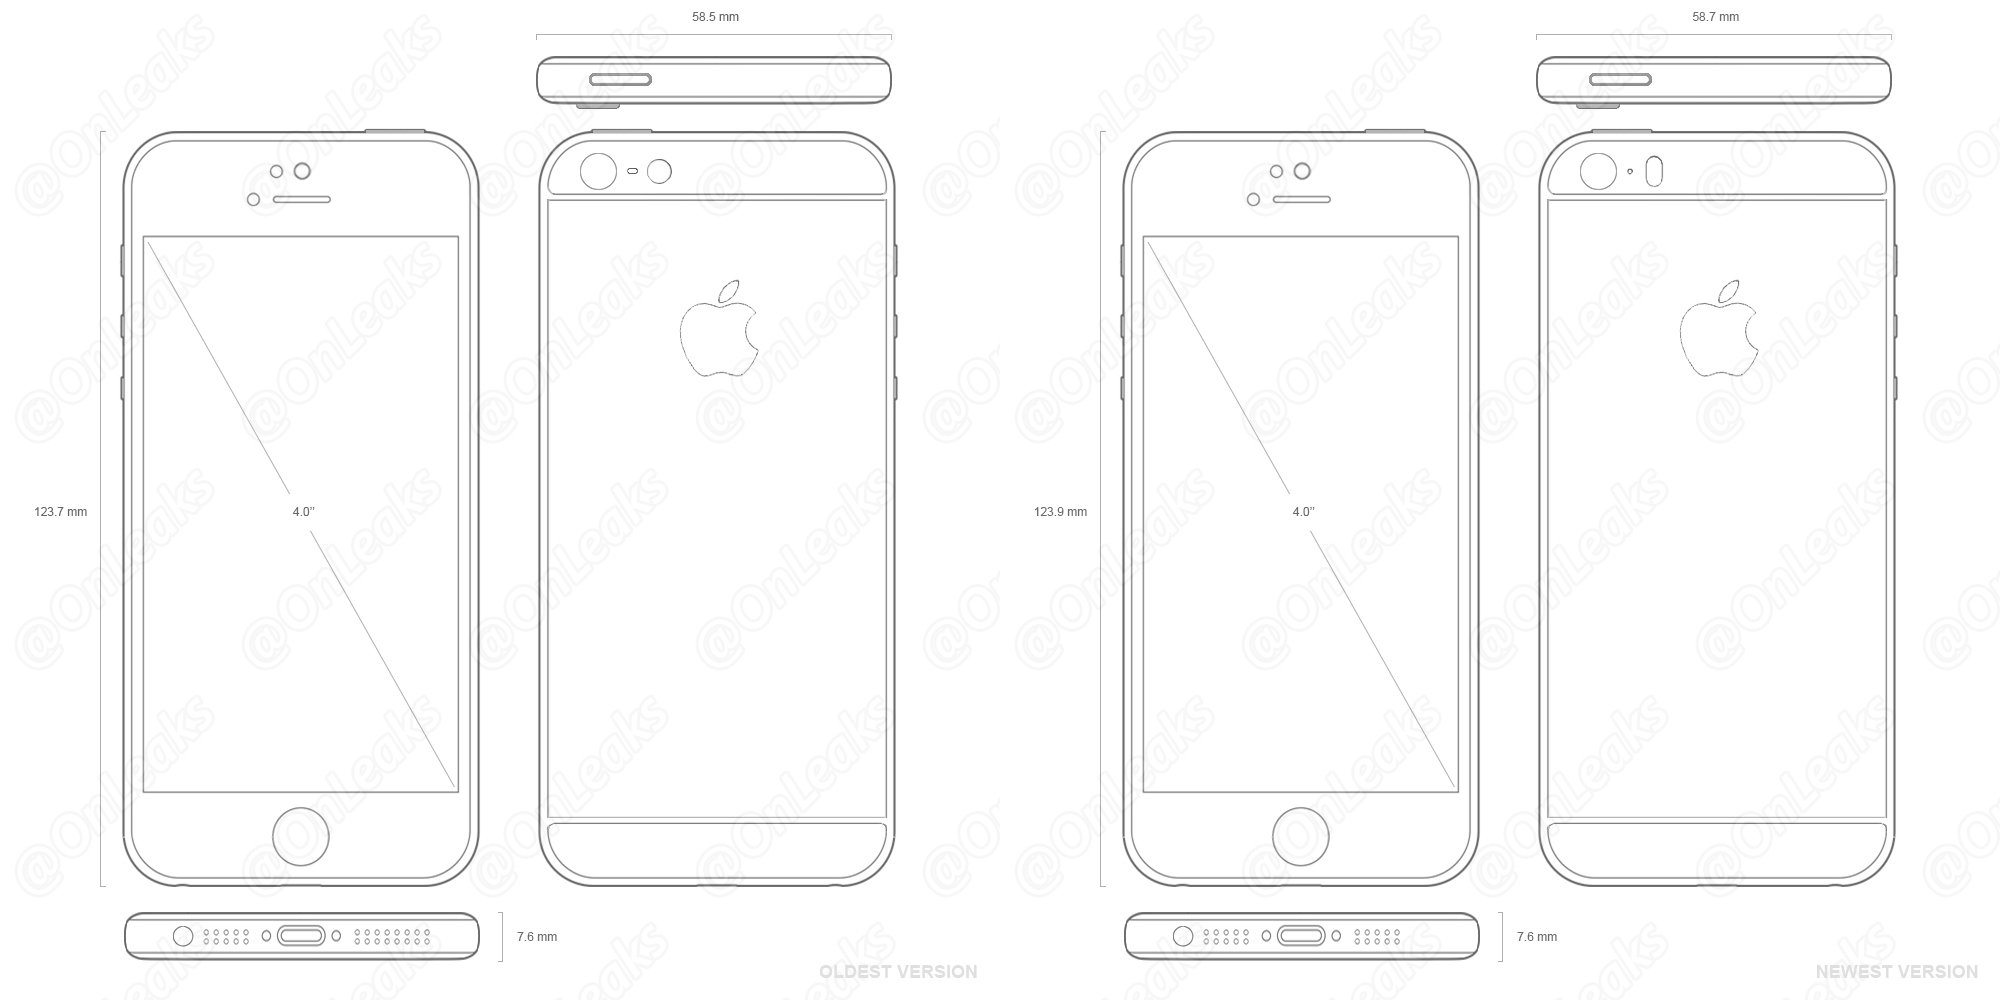 iPhone-SE-Dimensions-iPhone-5SE